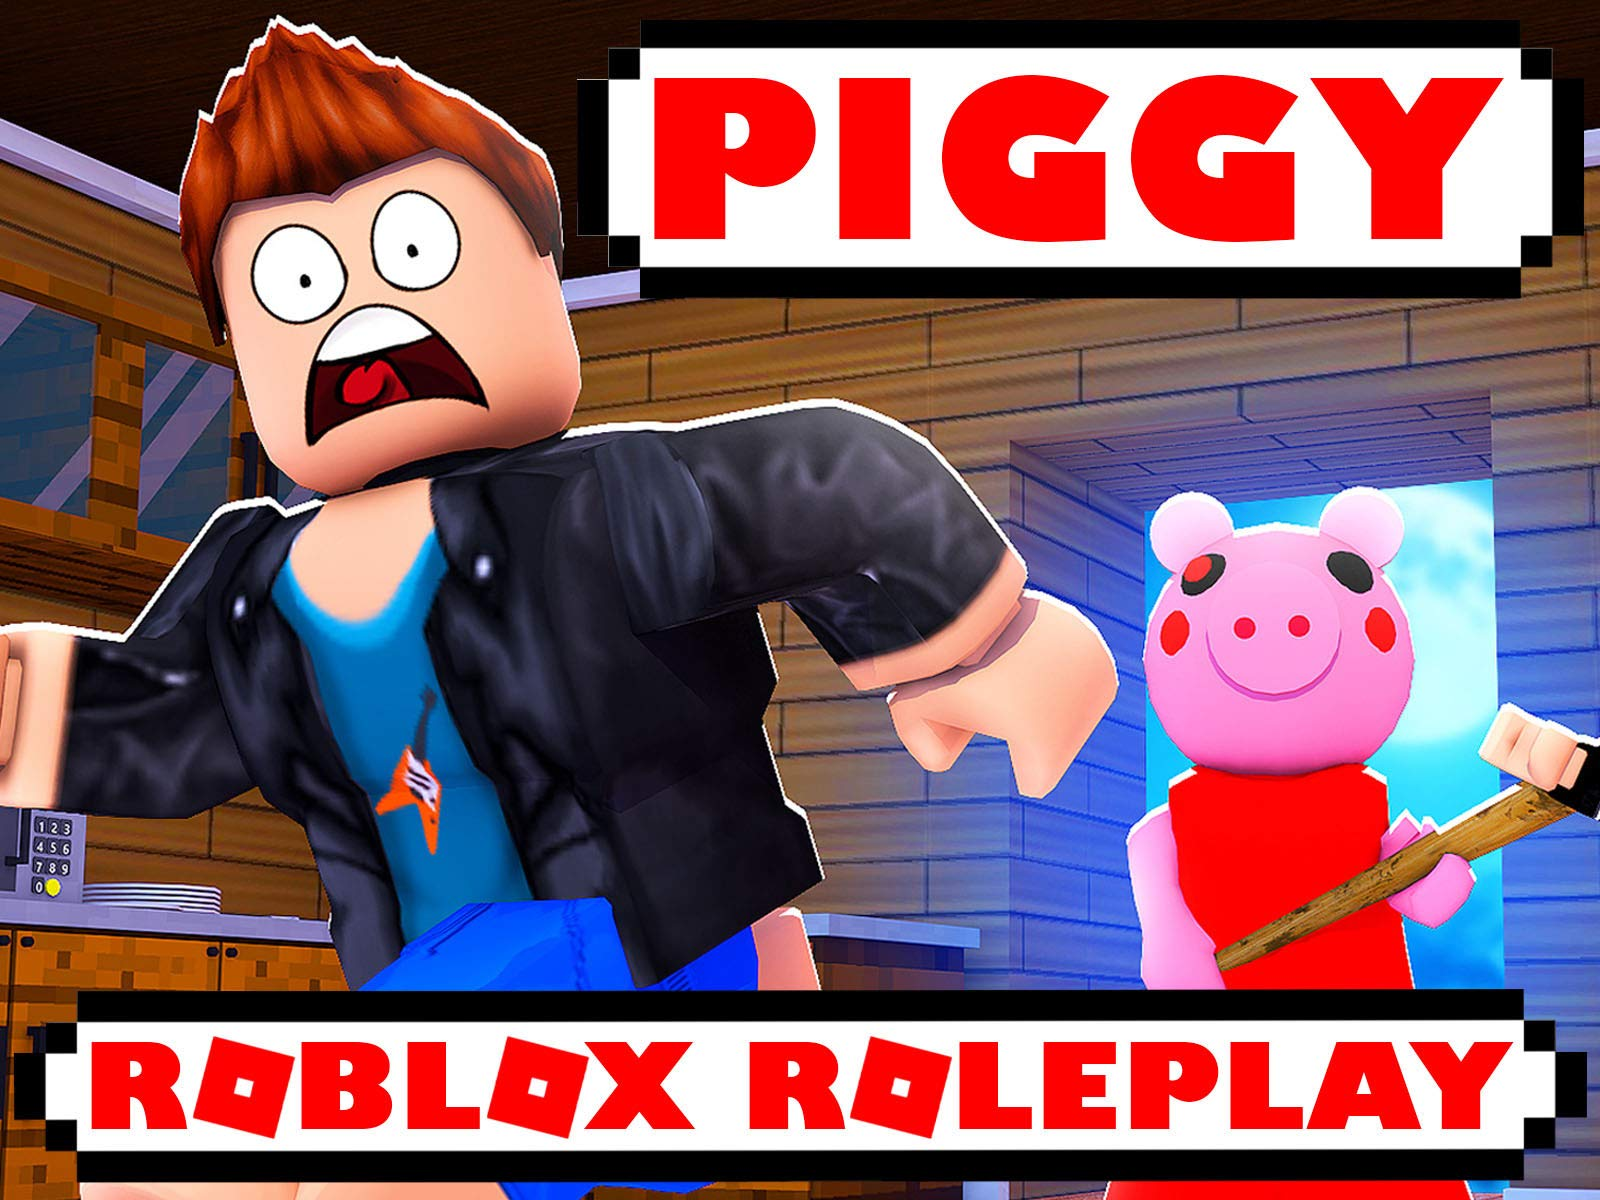 Piggy (Roblox Roleplay)